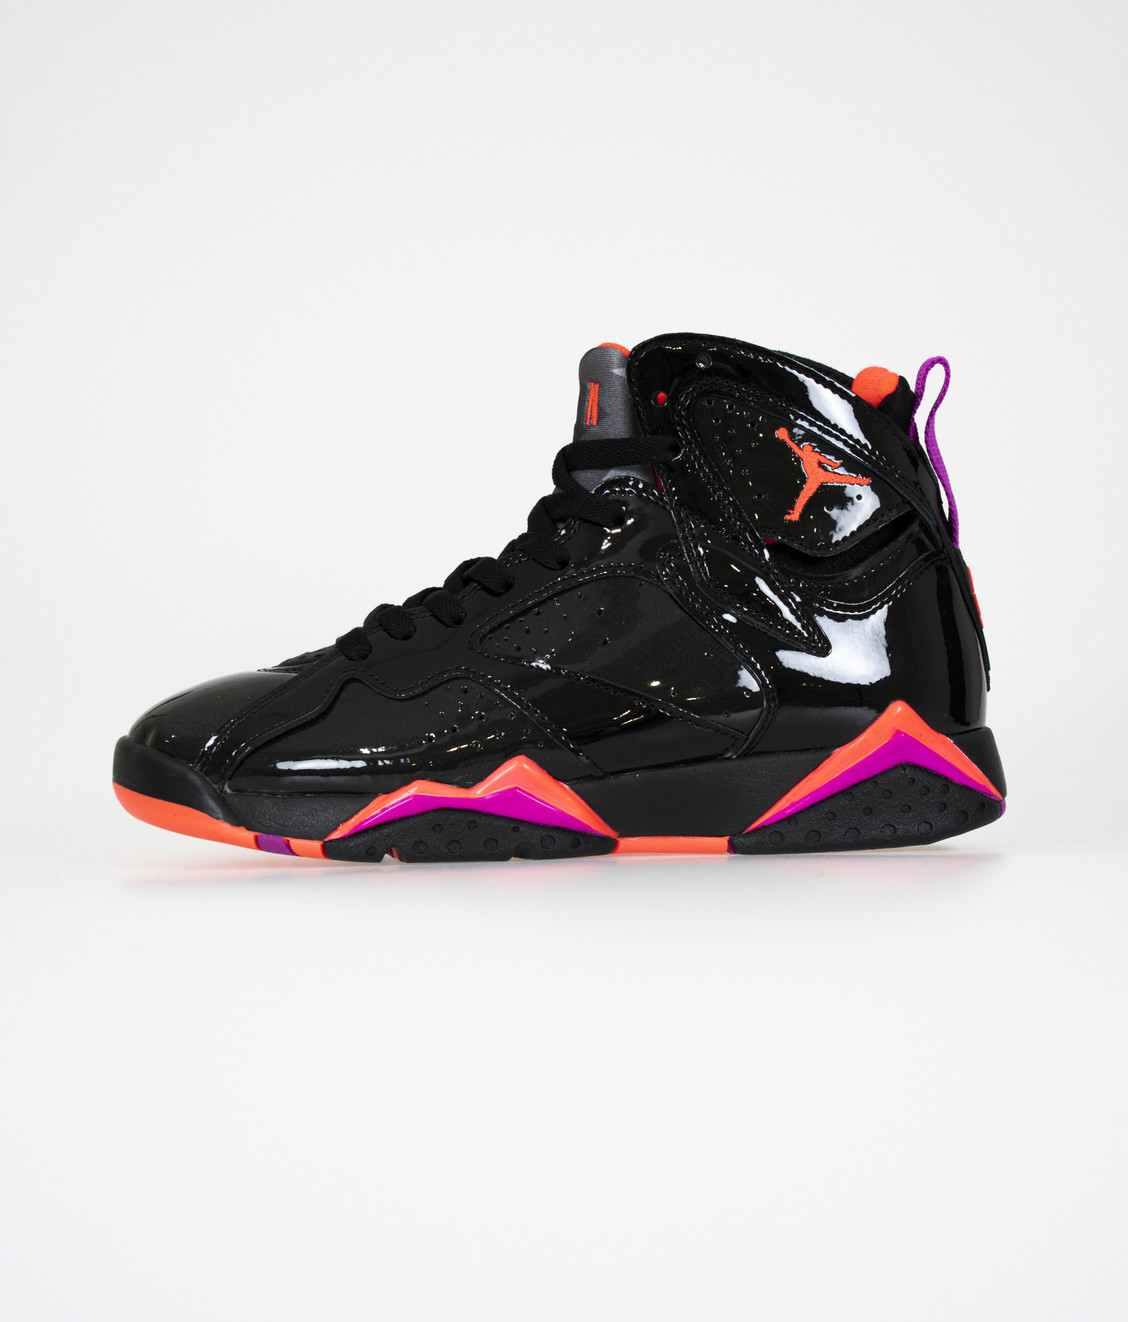 Nike Air Jordan 7 W Retro Black/Bright Crimson